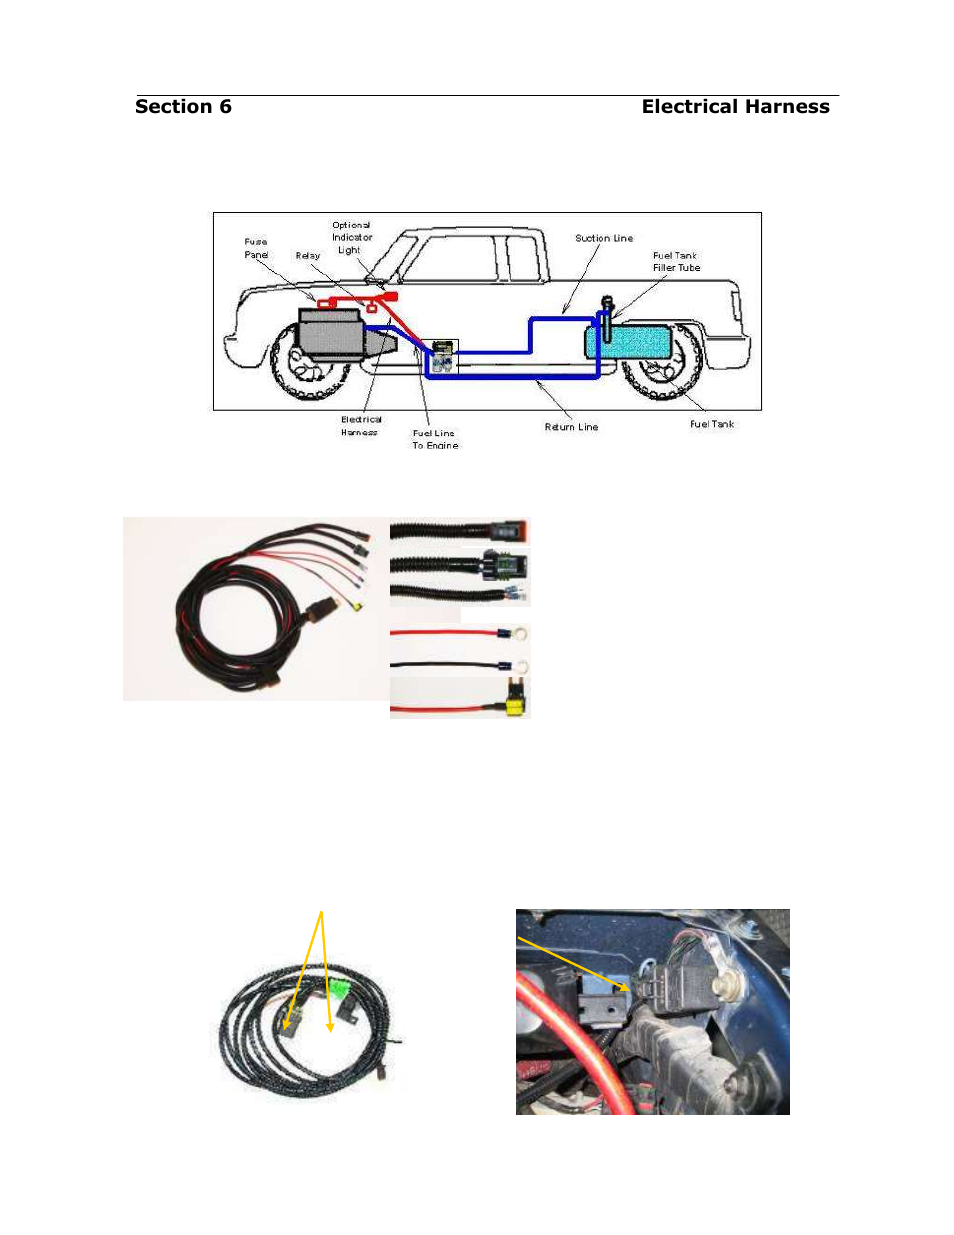 Airdog Wiring Diagrams Diagram Schematics Indicator Light The Is Equipped With A Relay Controlled Harness 2013 Dodge Ram Trailer